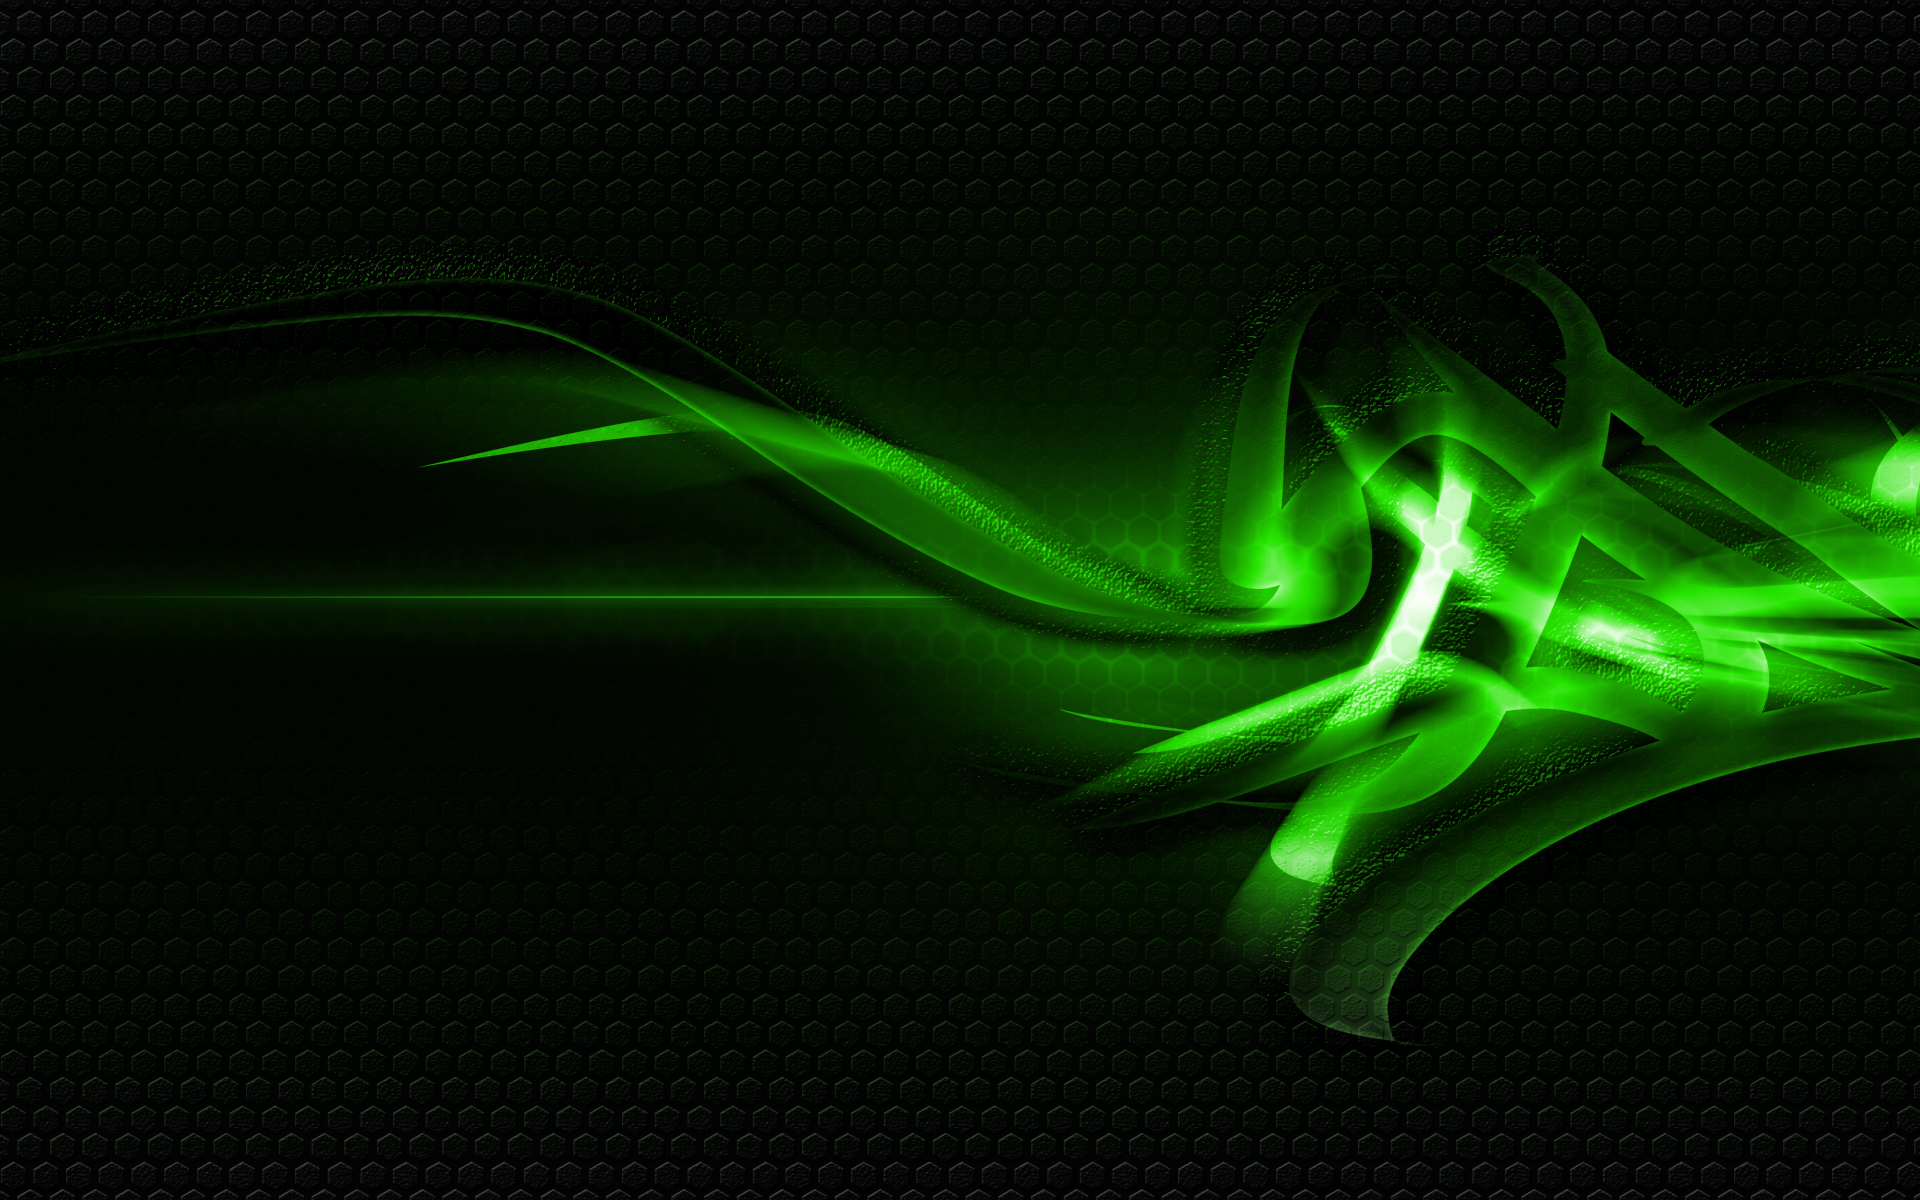 bizwp contentuploads201205cool abstract green wallpaperjpg 1920x1200